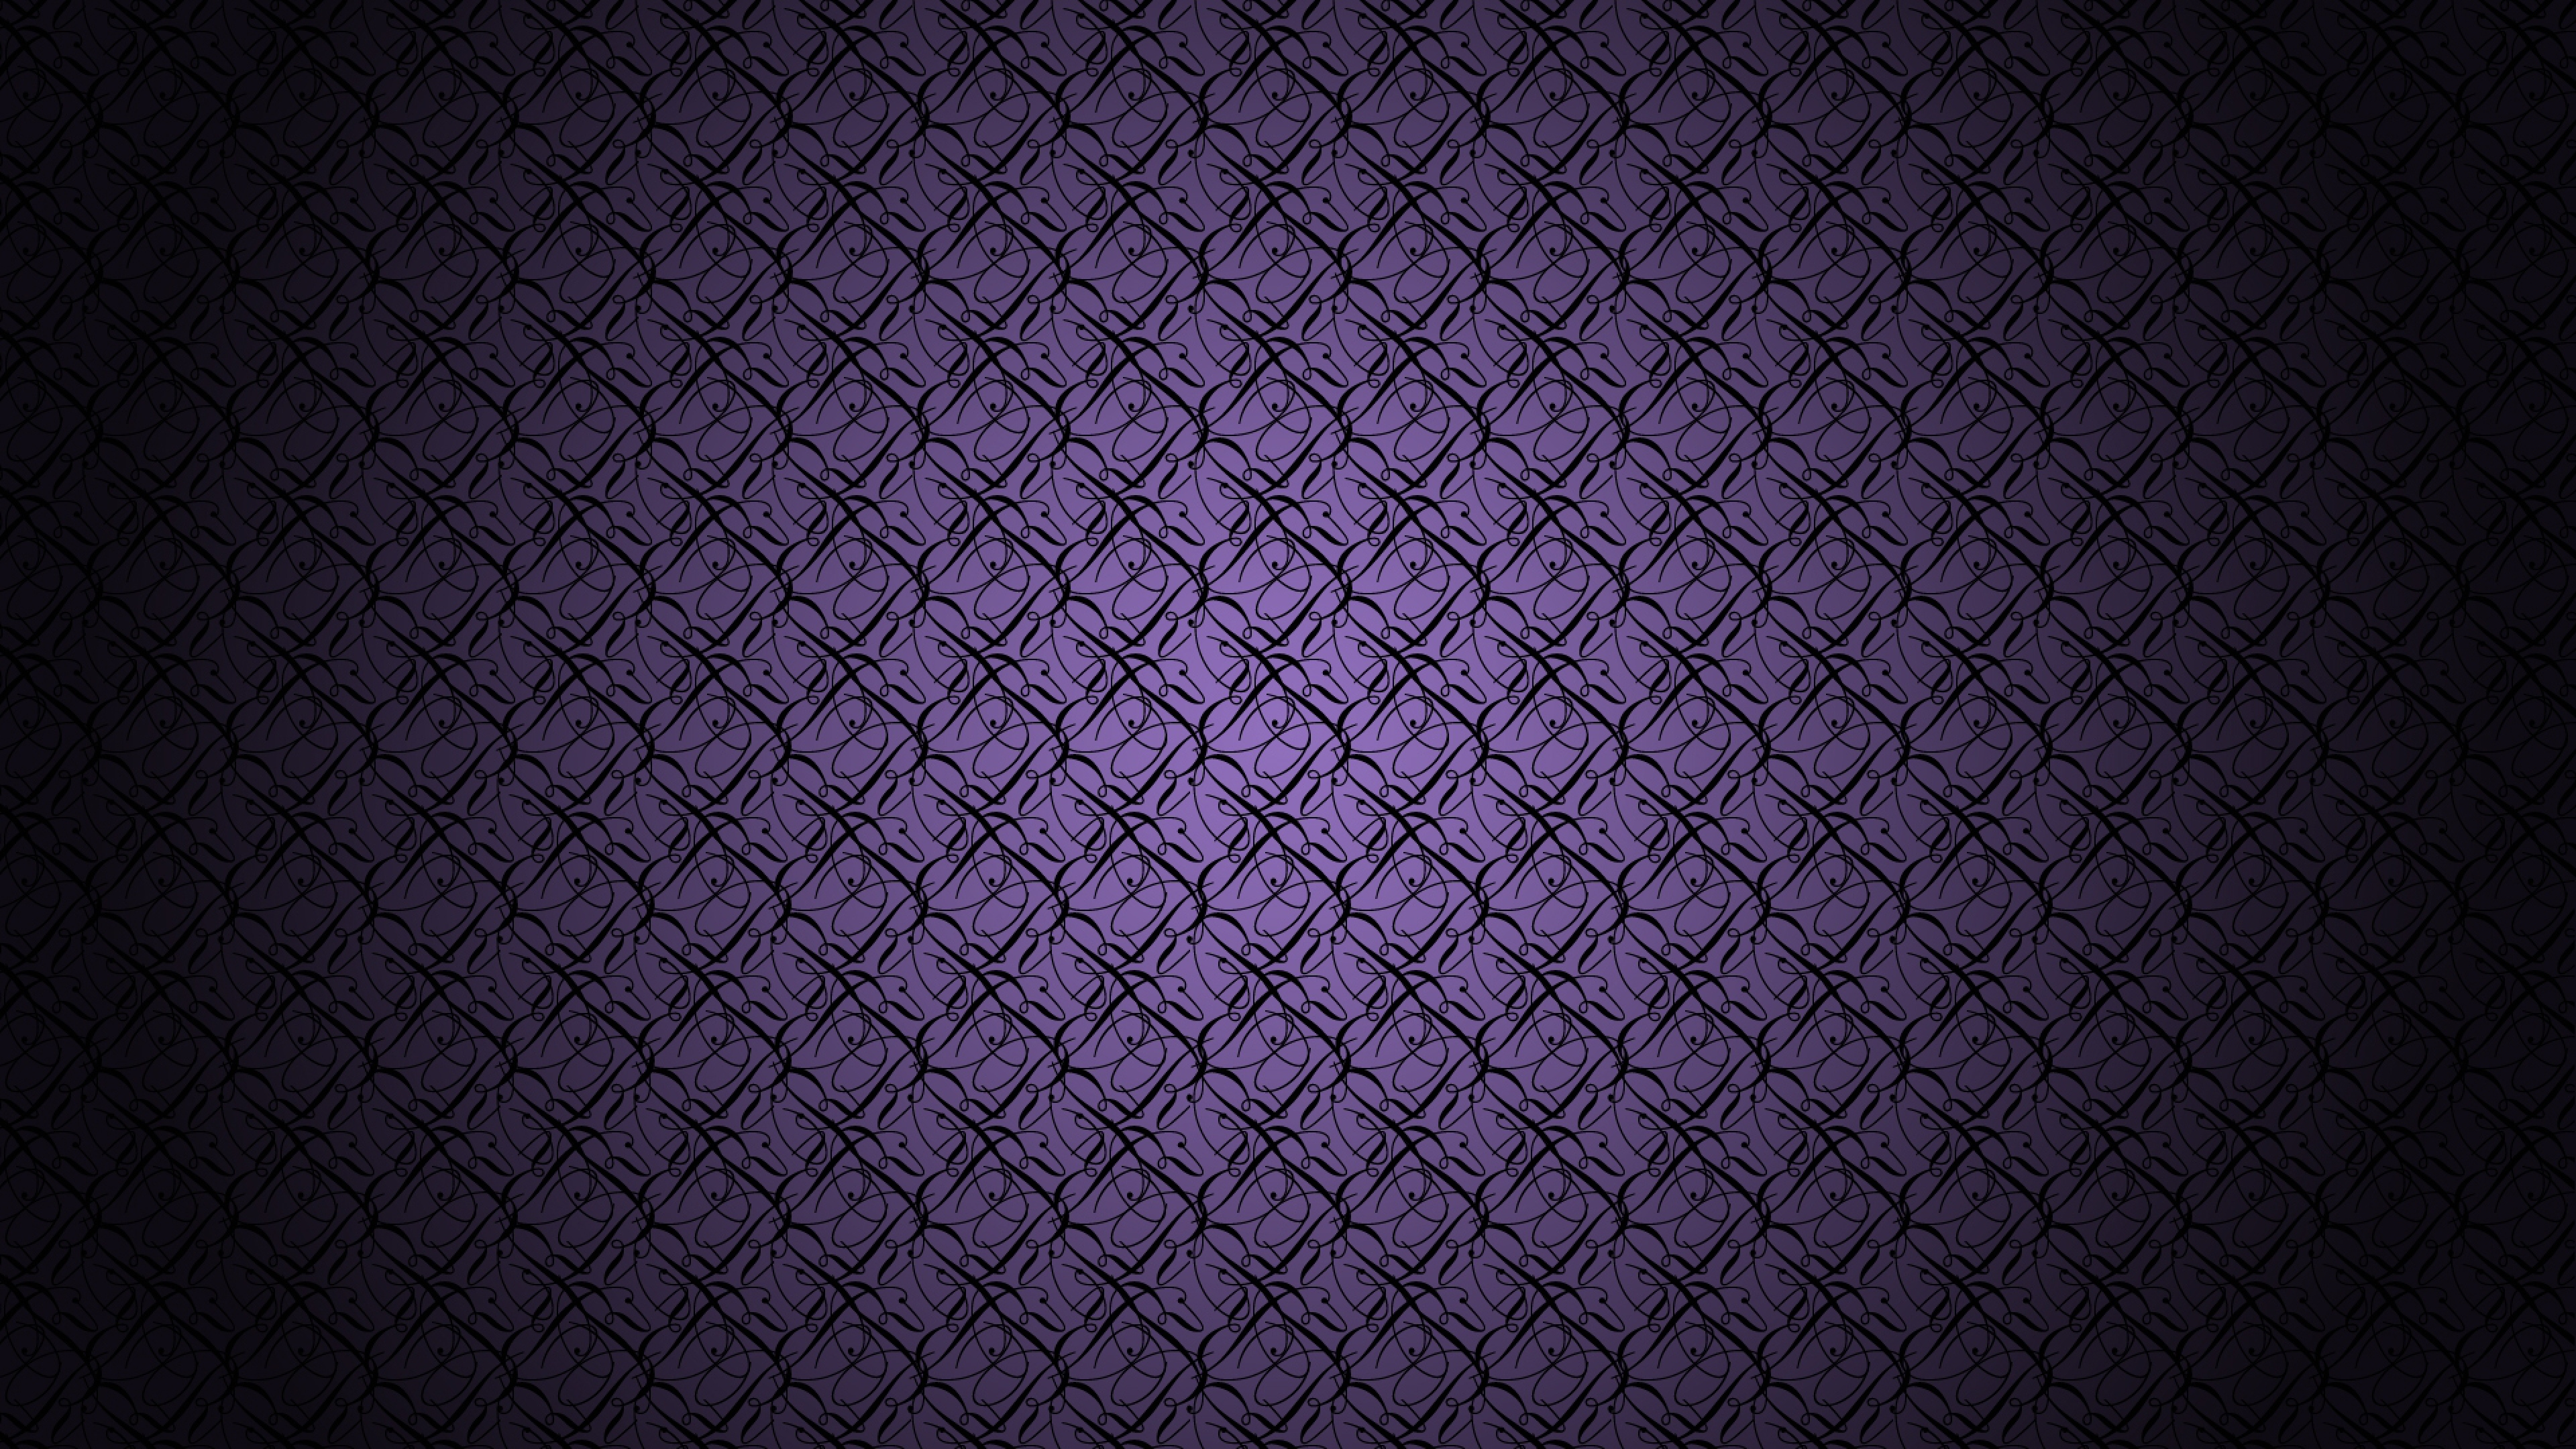 Purple Black Background Pattern 609.08 Kb